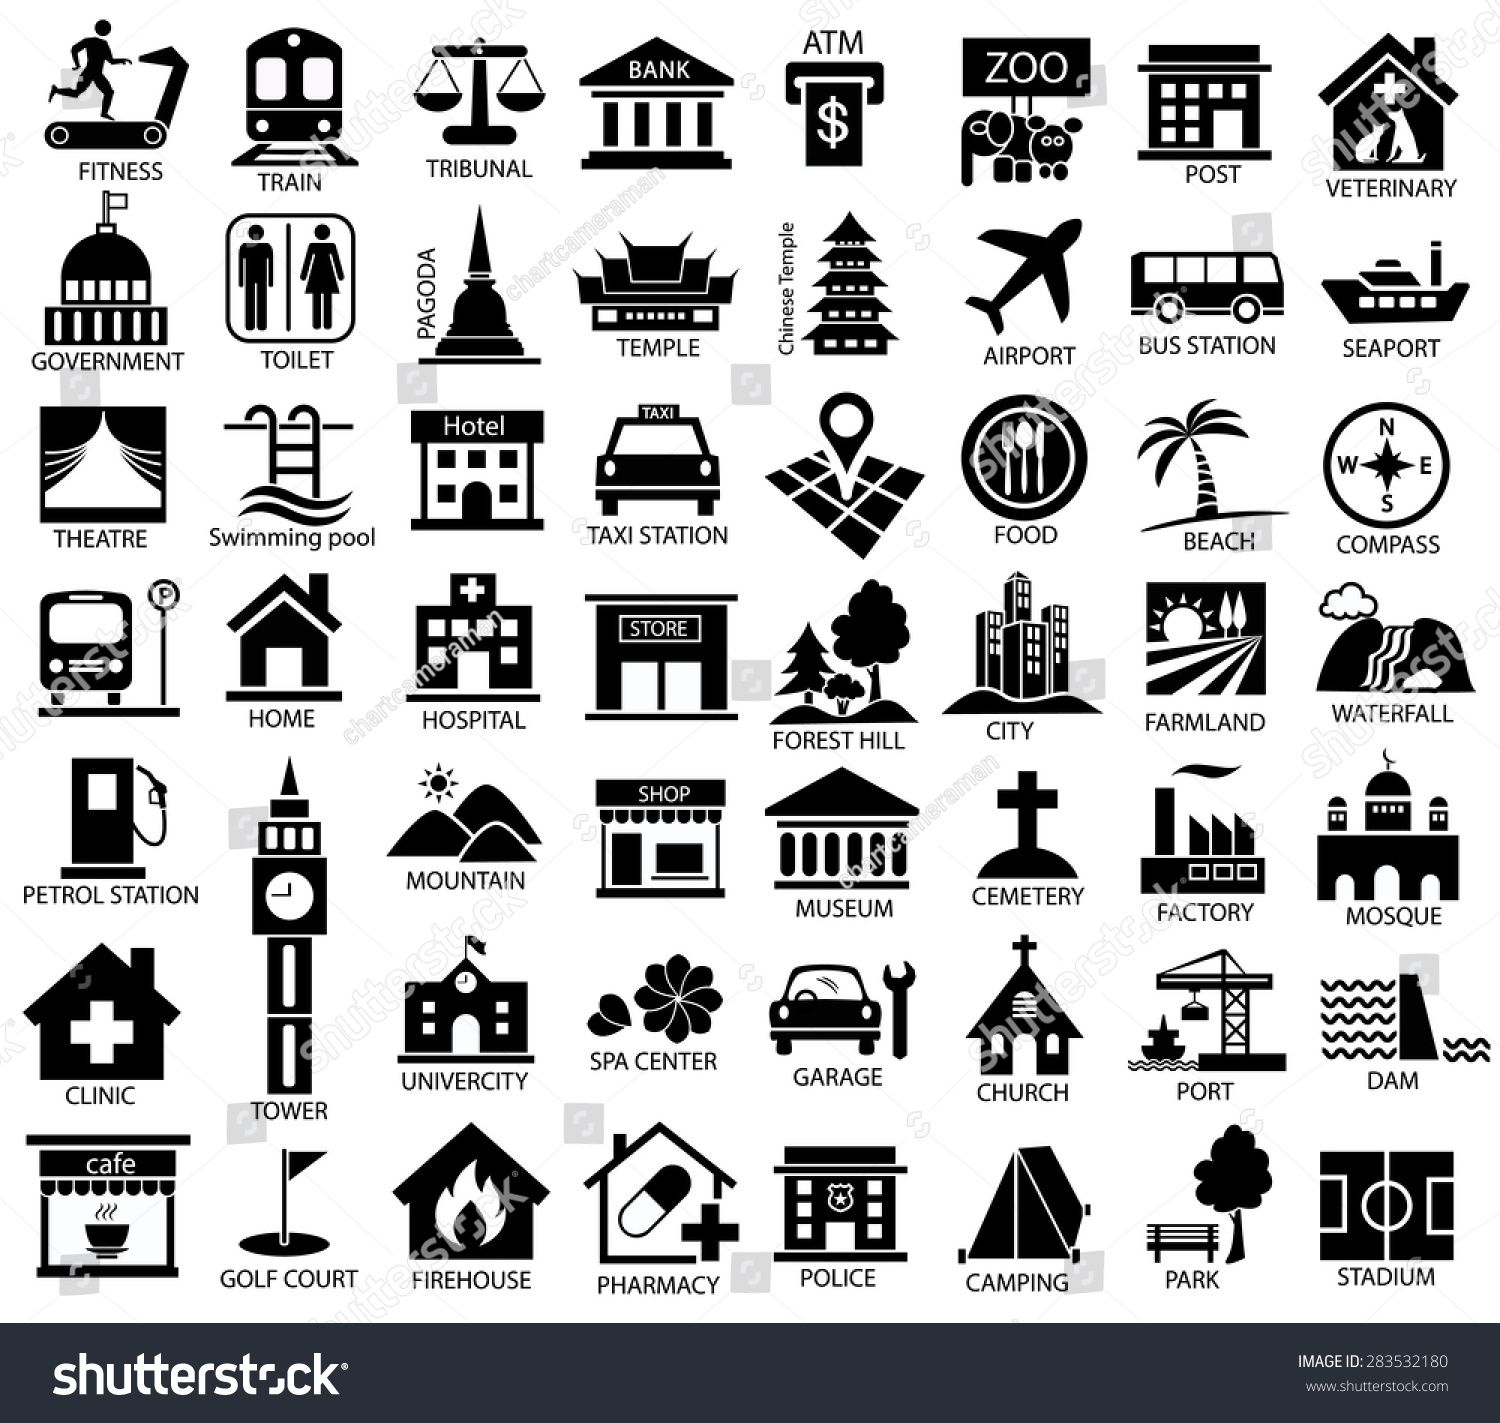 symbol of place symbol logo pinterest symbol of place biocorpaavc Image collections